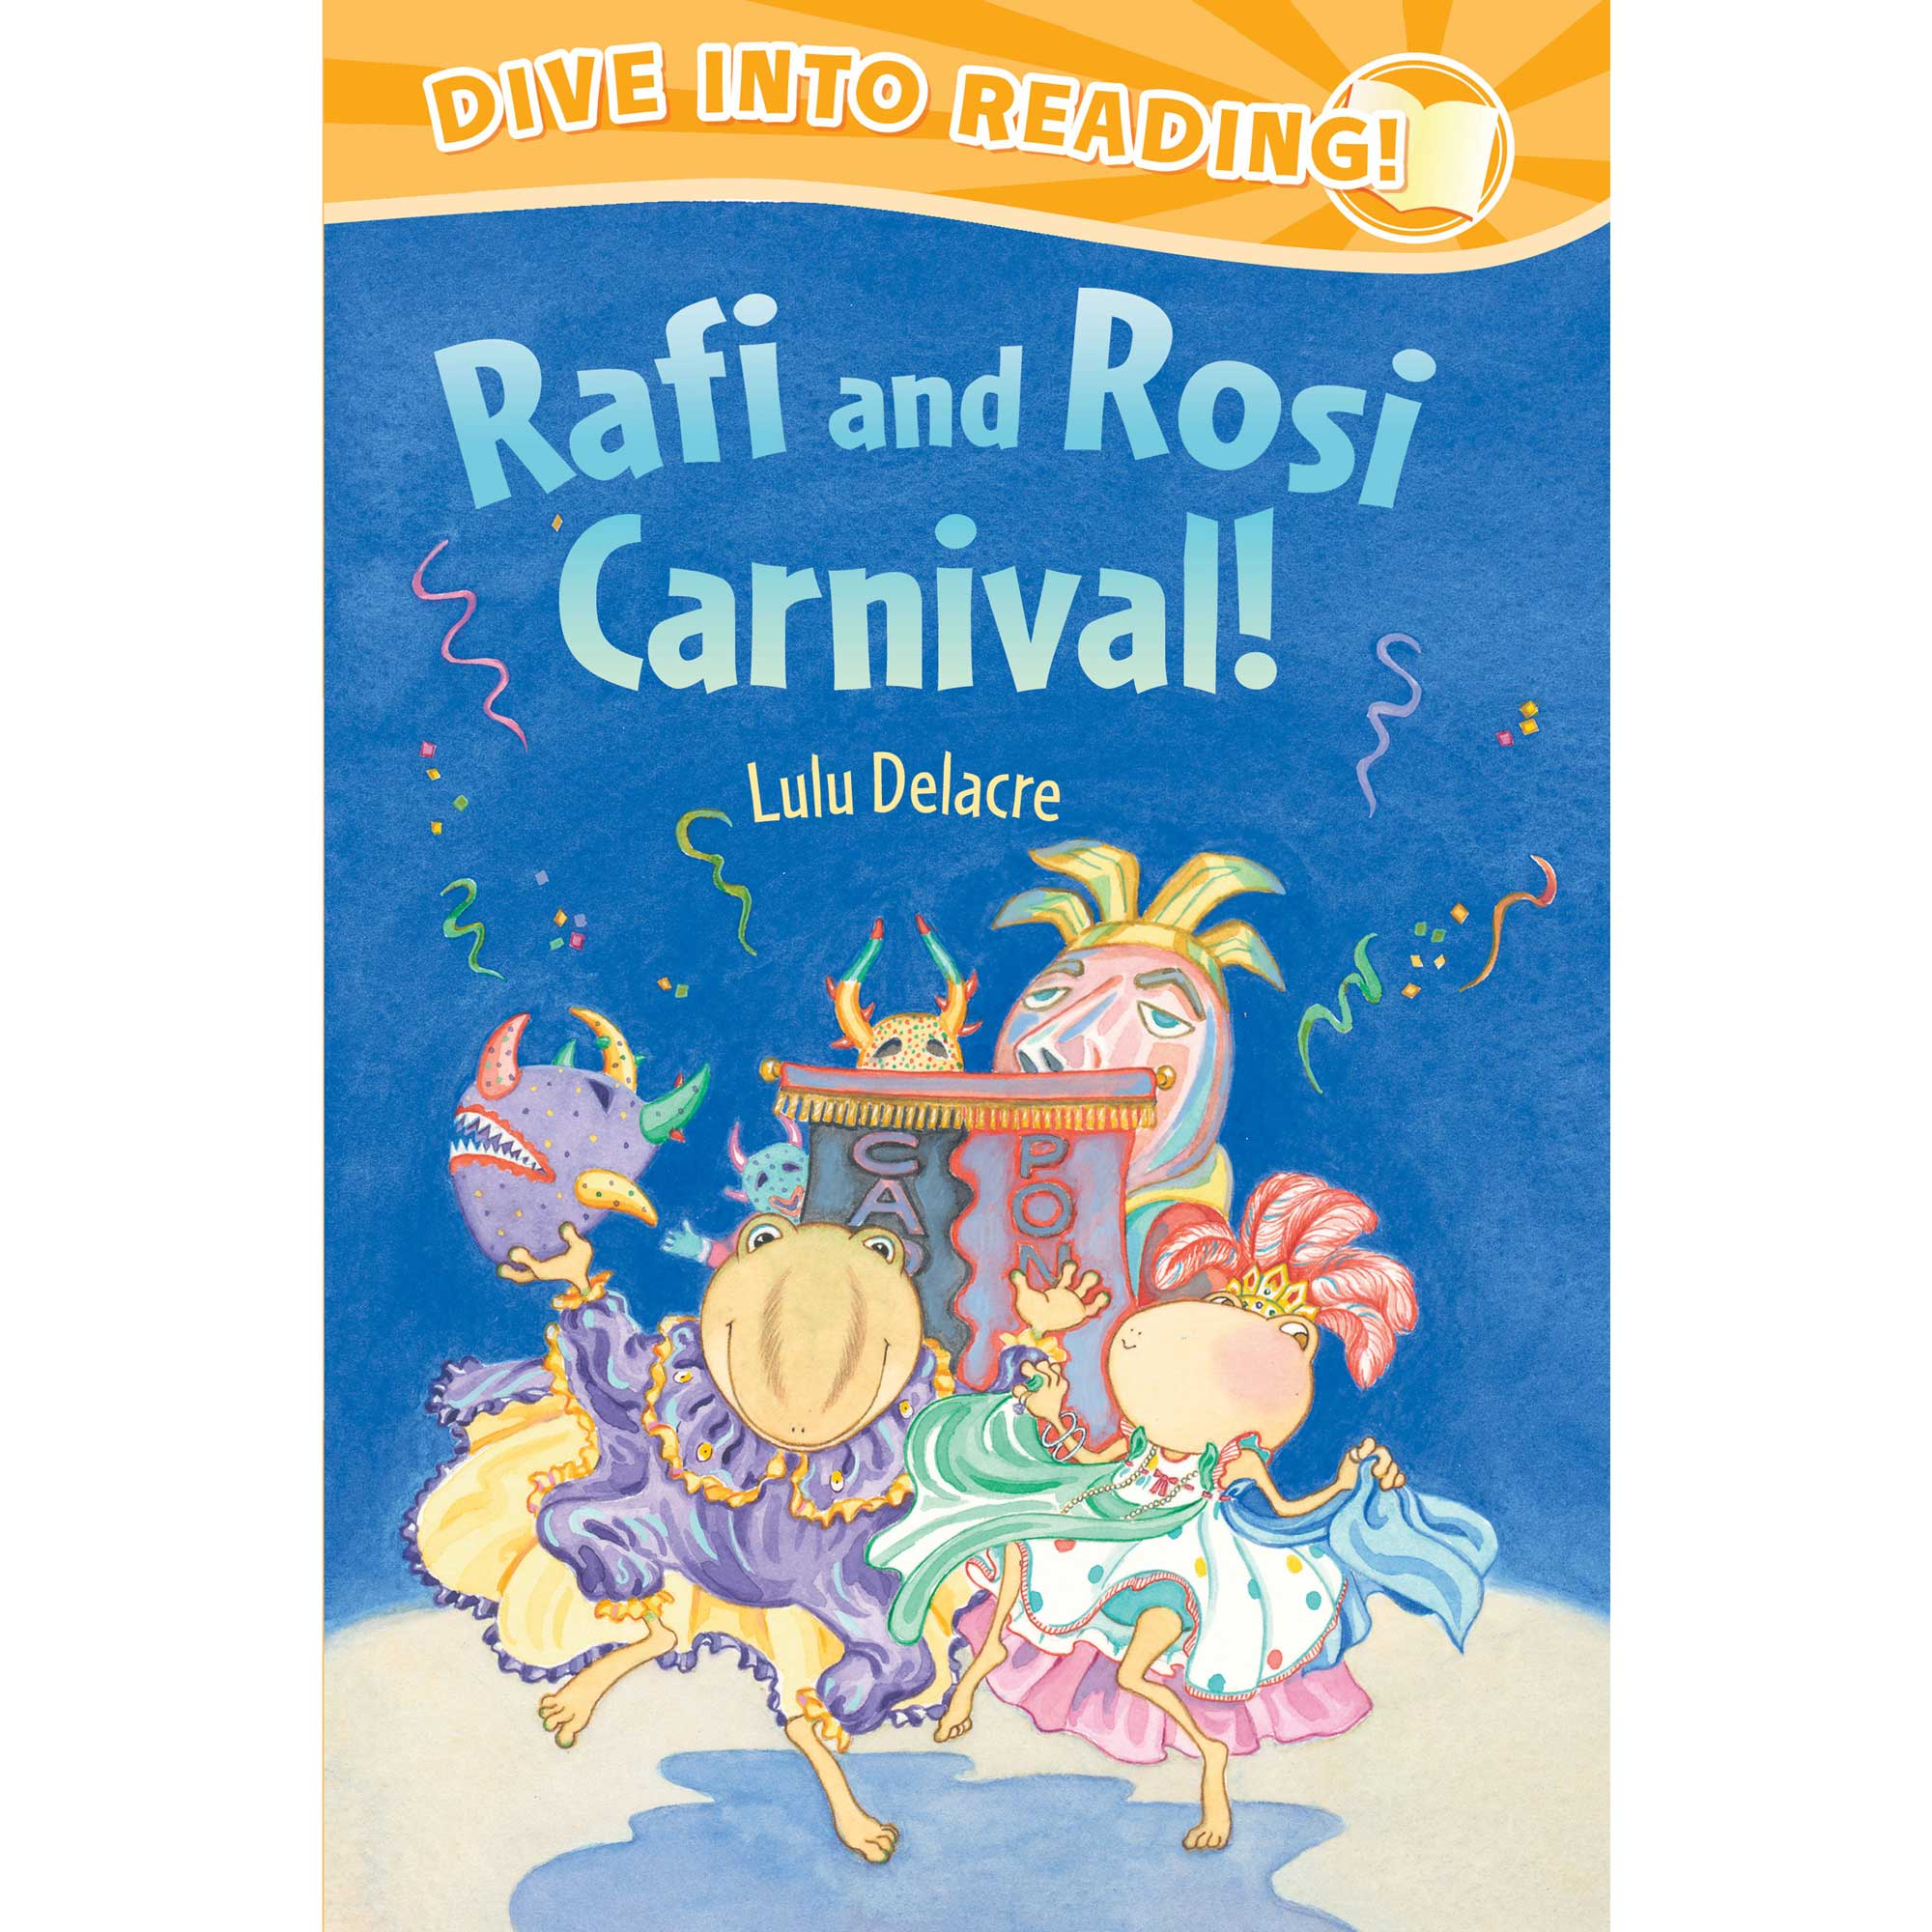 Rafi and Rosi Carnival by Lulu Delacre